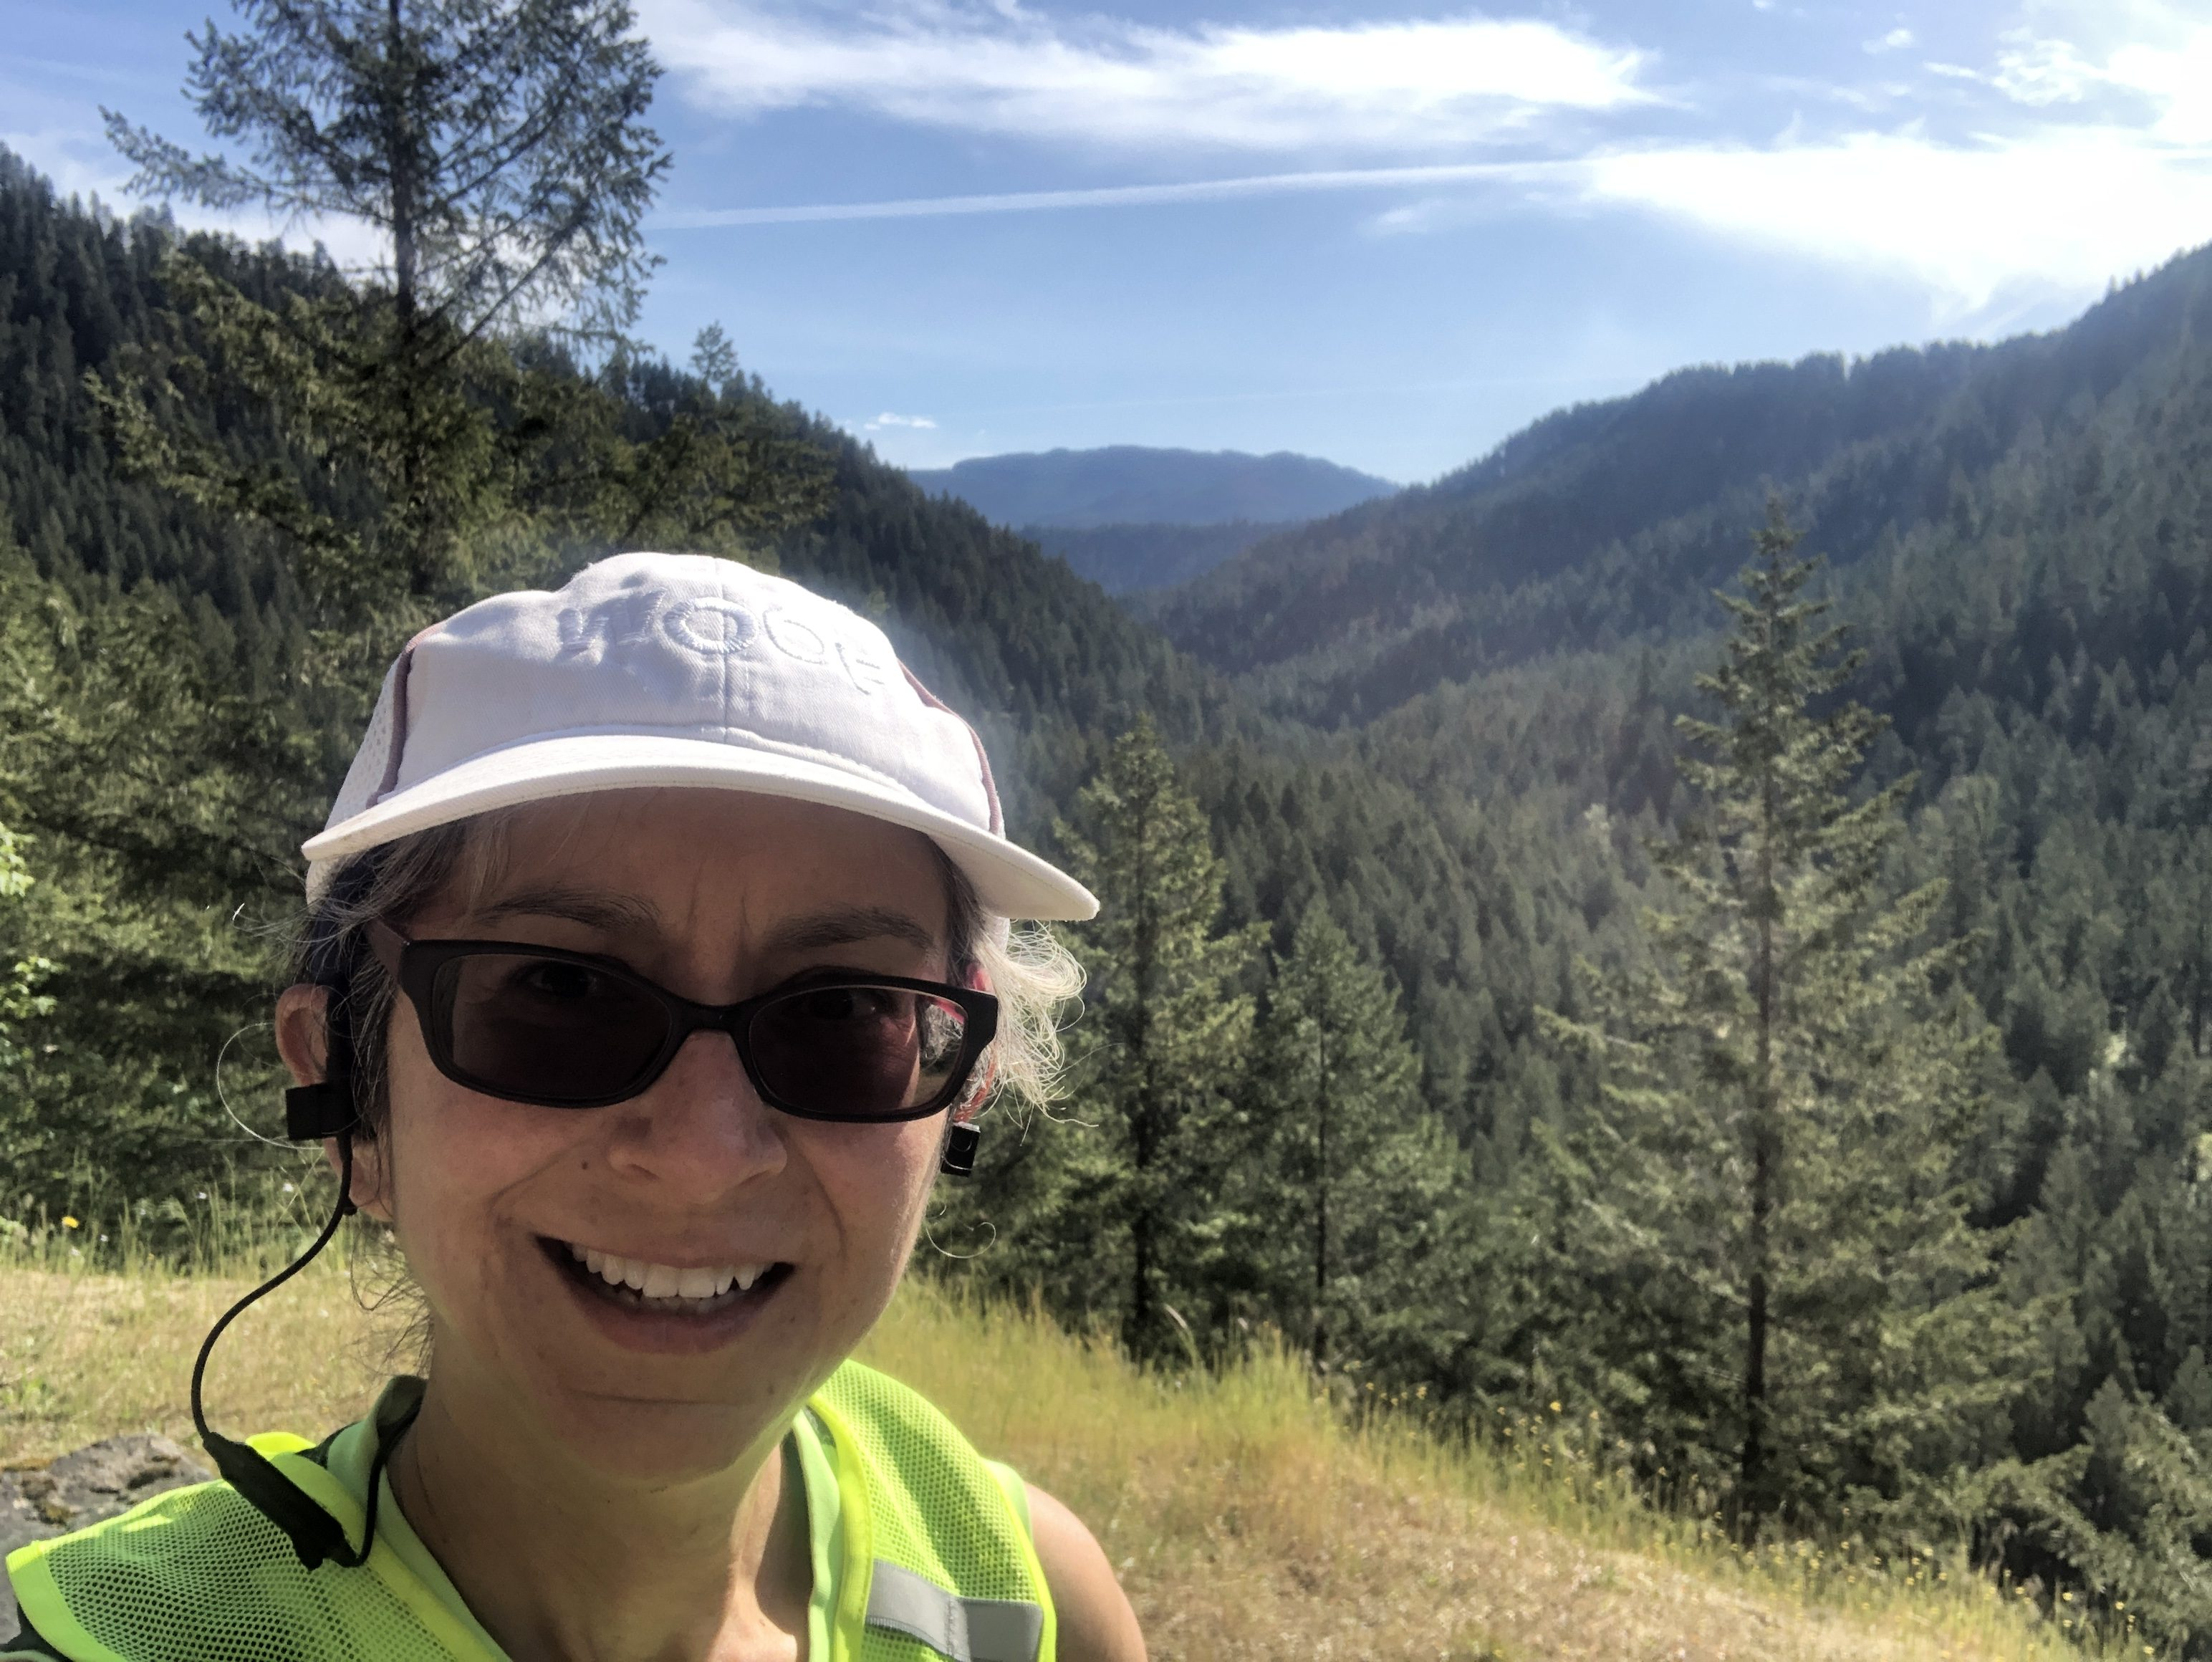 A woman in white cap smiling at camera with lush forest valley in backgound.